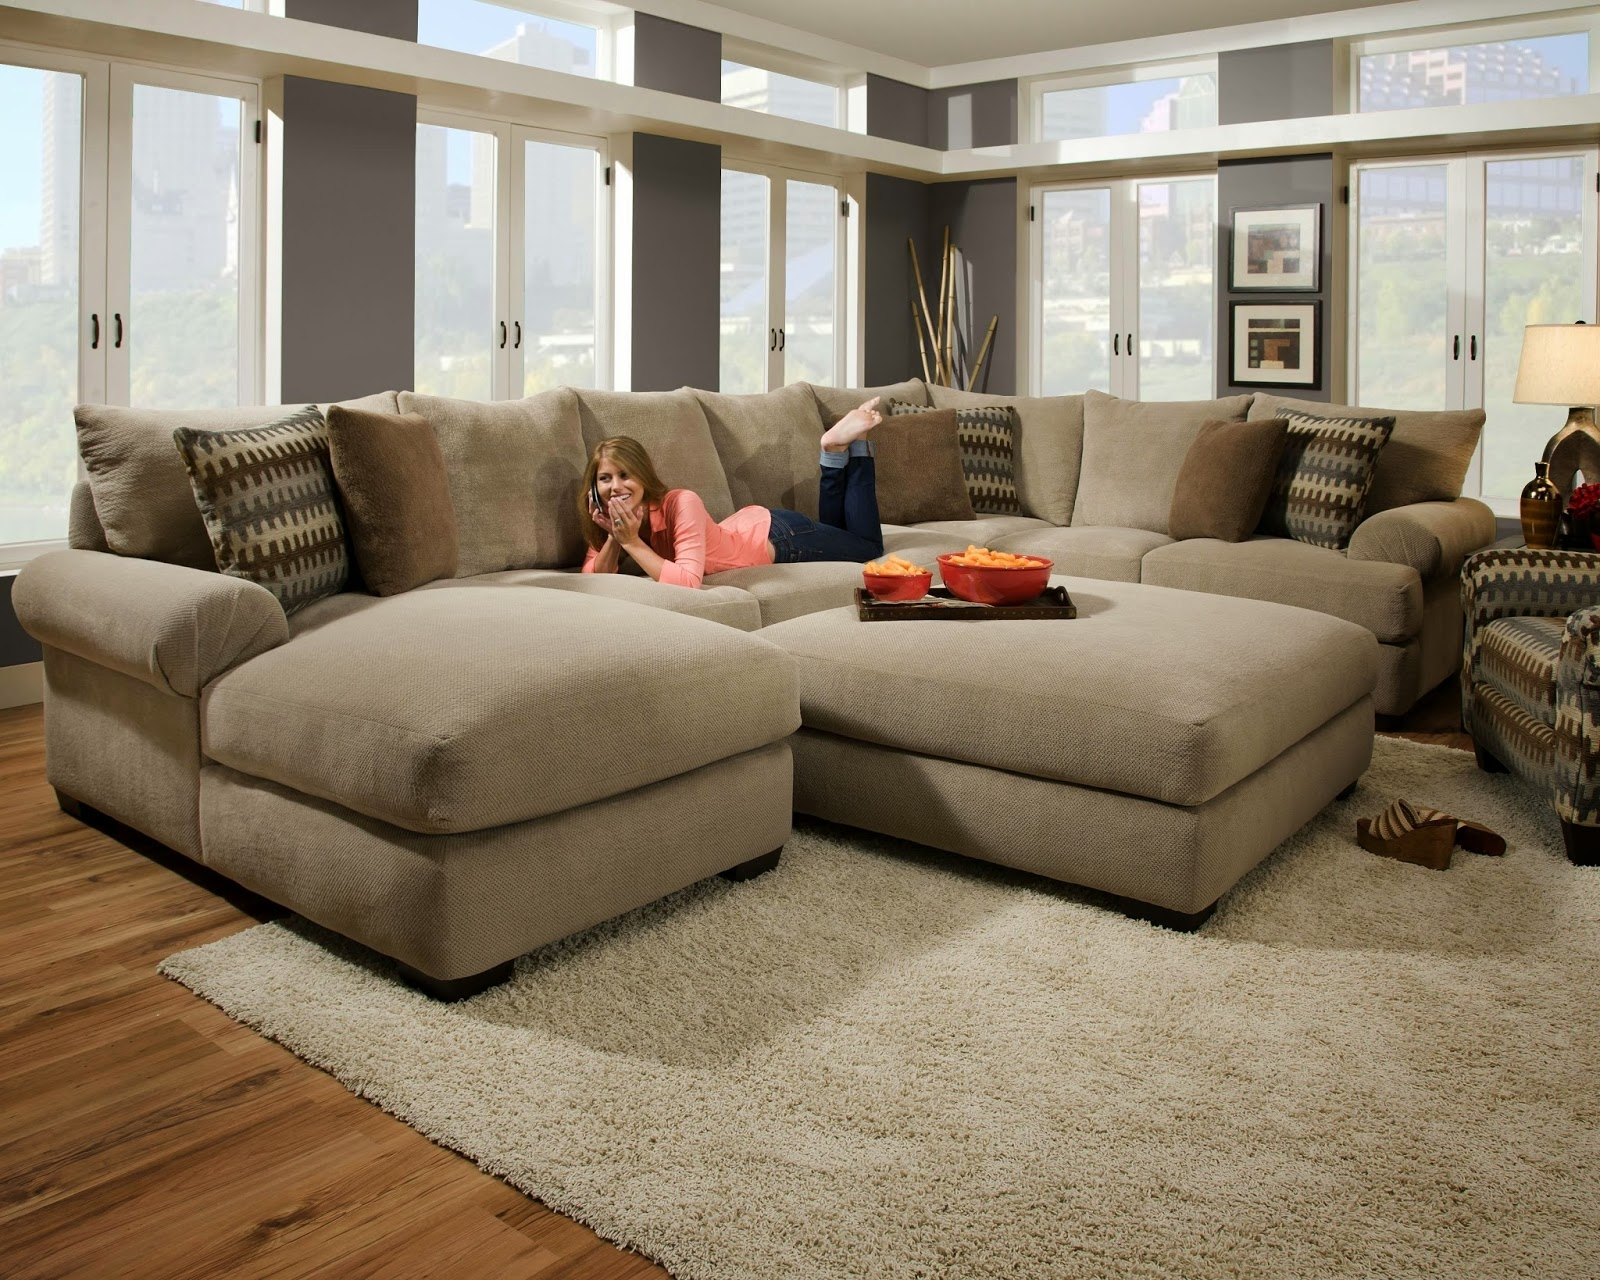 Etonnant Microfiber Sectional Sofa With Ottoman